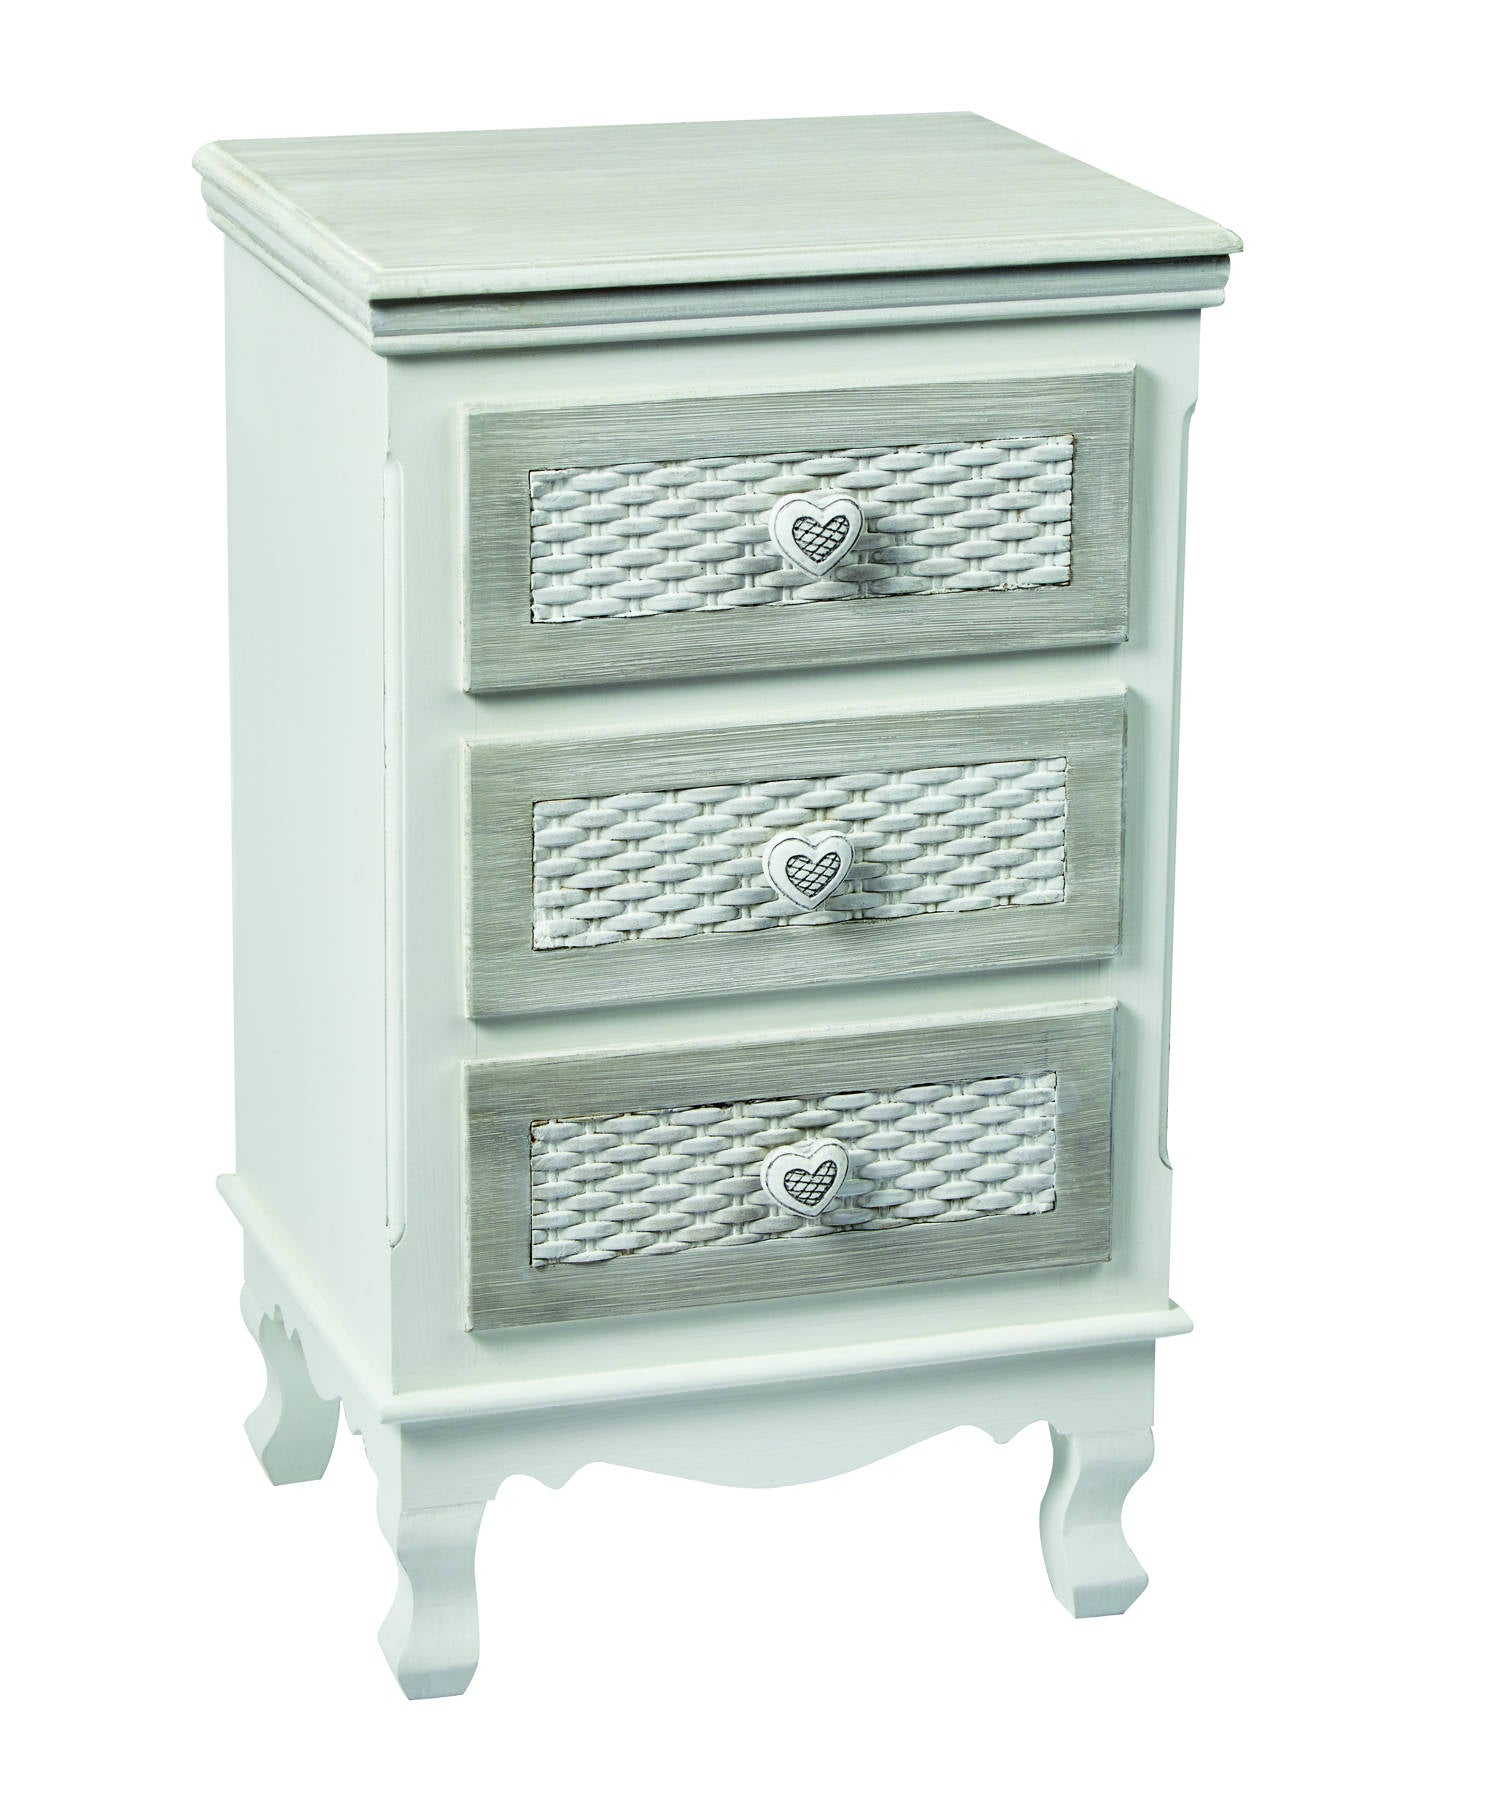 Lorient 3 Drawer Bedside Cabinet - Ezzo